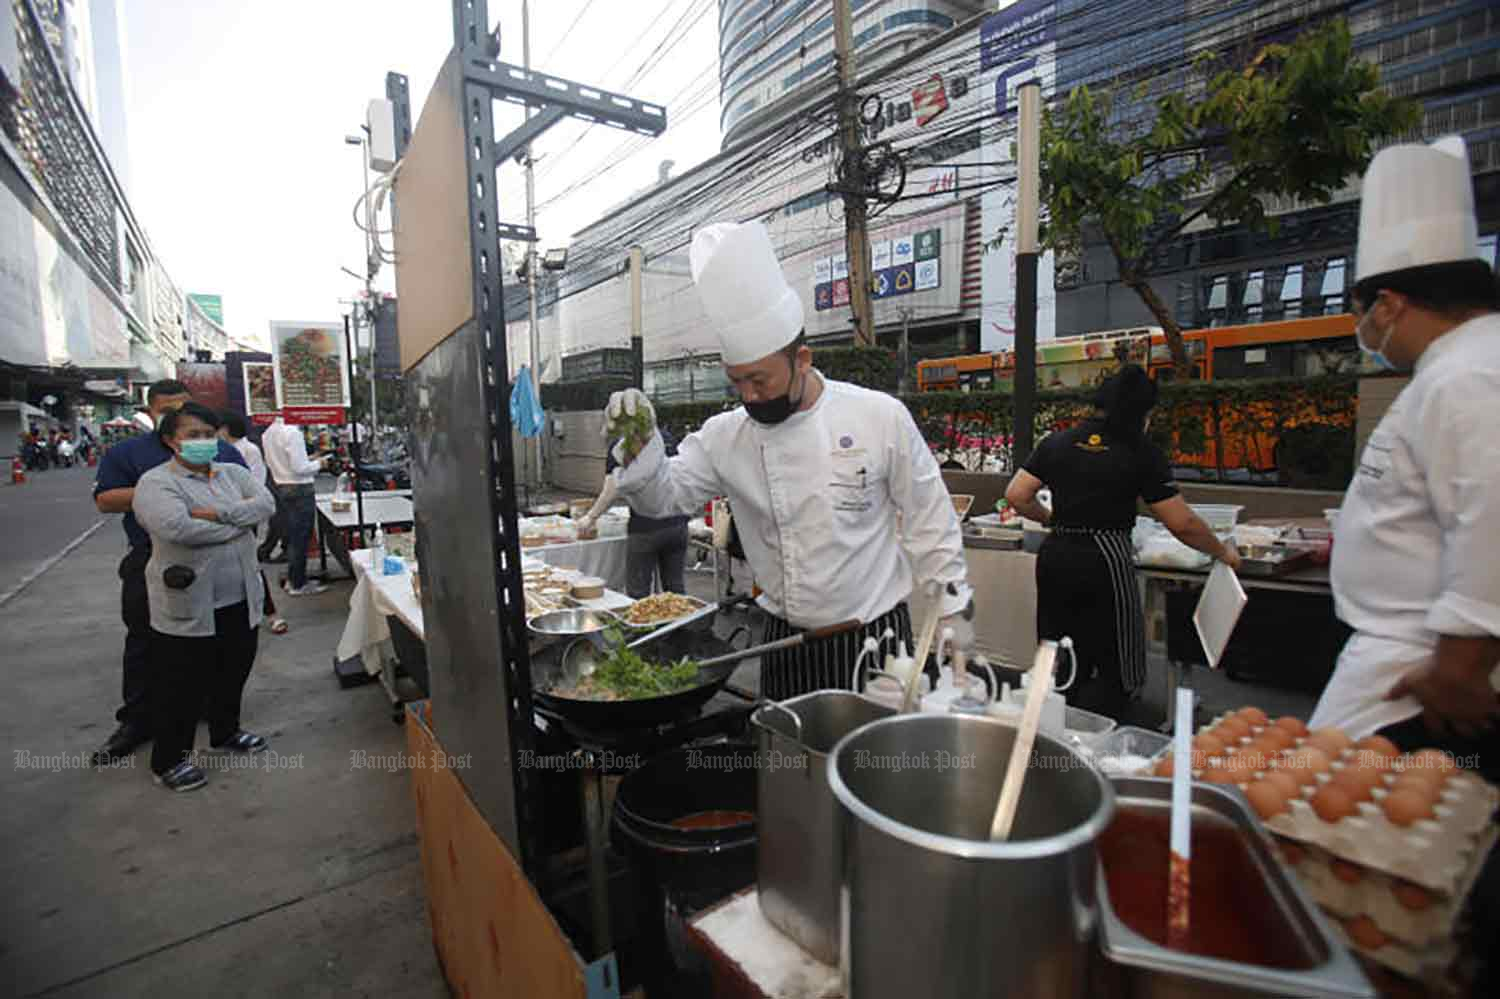 With most hotels empty of guests, chefs from the Grand Mercure Hotel on Ratchadaphisek Road were out on the street preparing food for sale to passers-by, in Bangkok on Friday. (Photo: Nutthawat Wicheanbut)